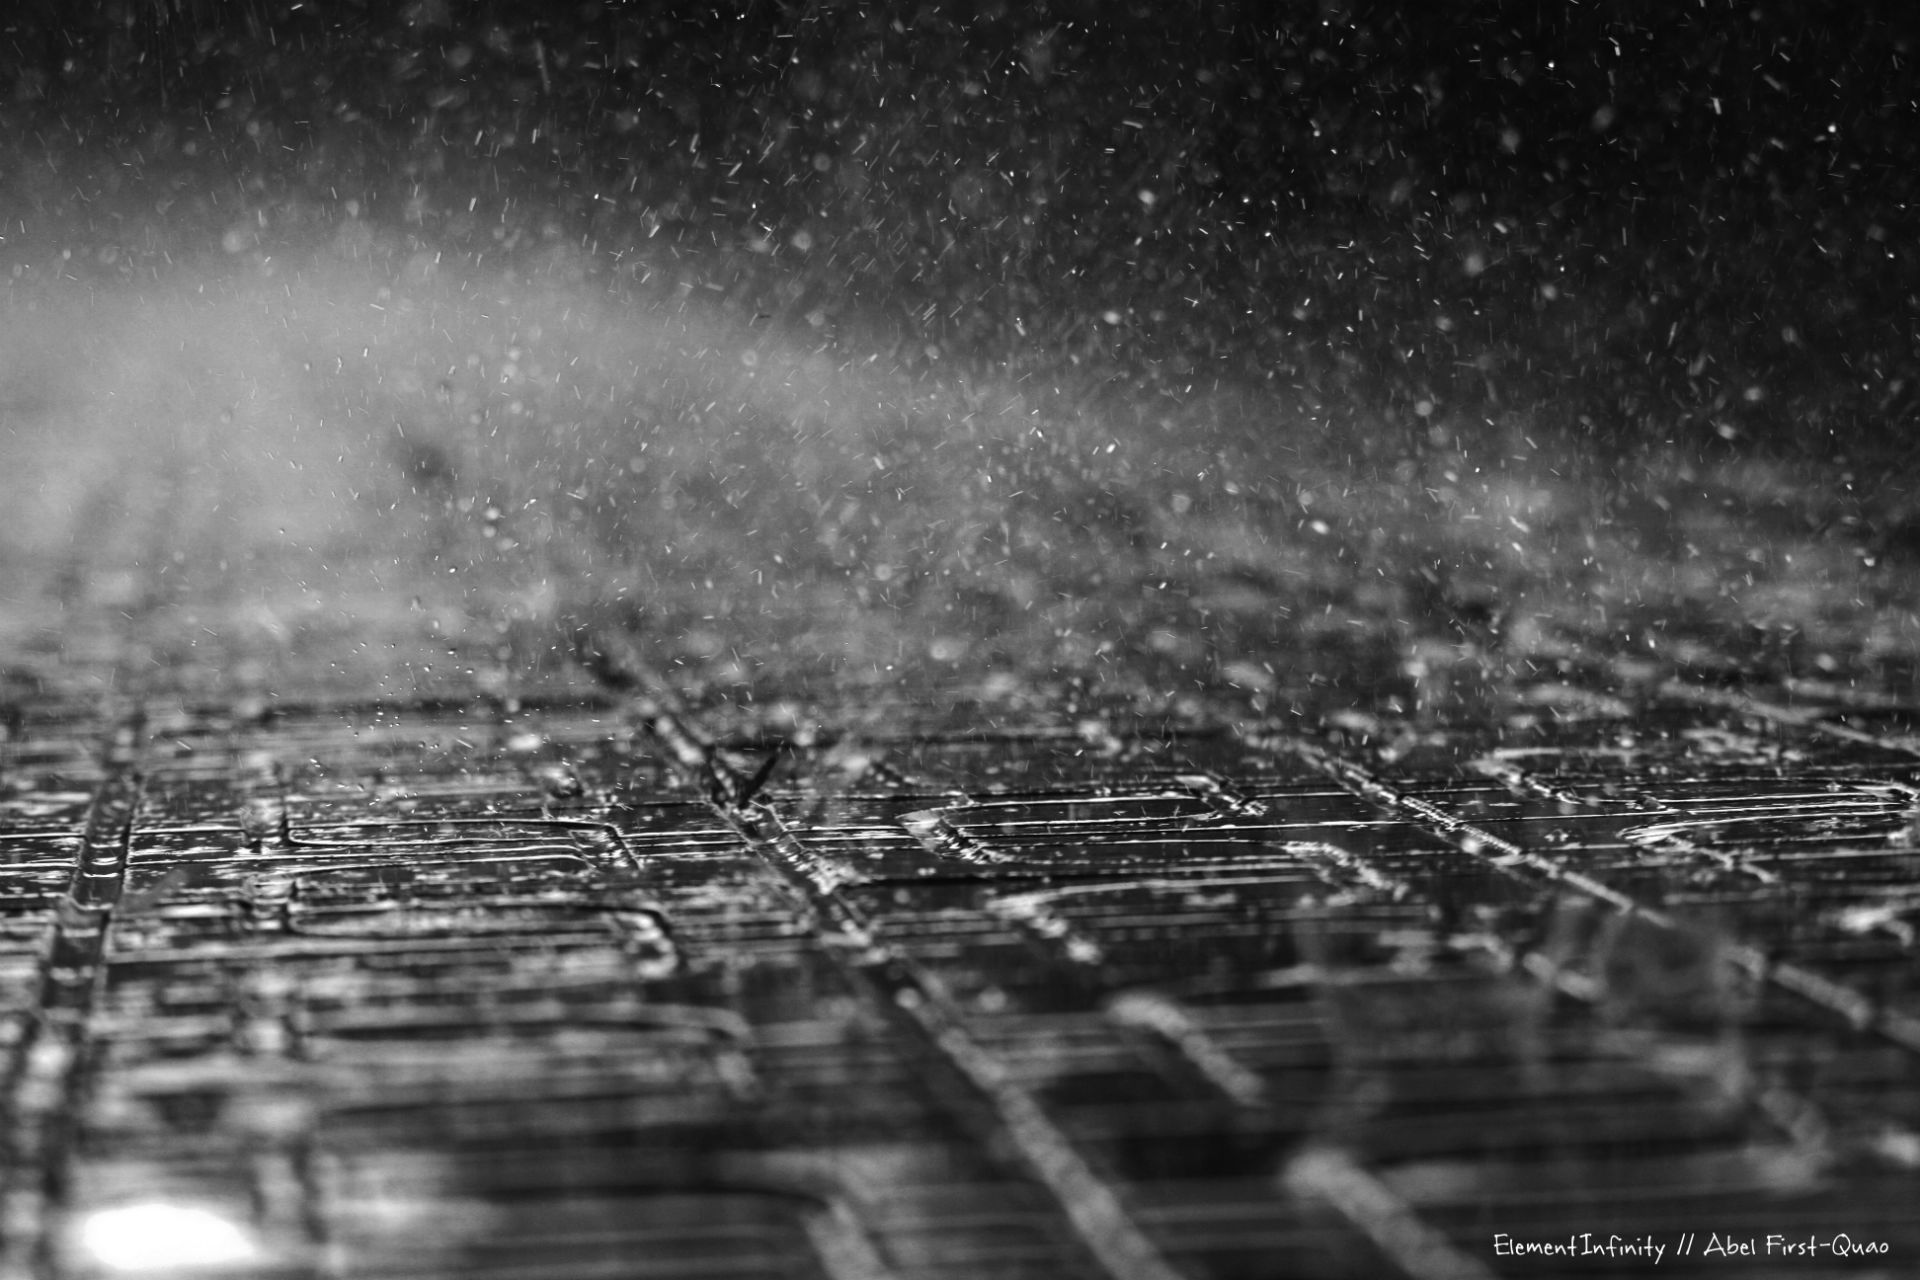 Sidewalk Cobble Rain Storm Wet Mood Wallpaper 1920x1280